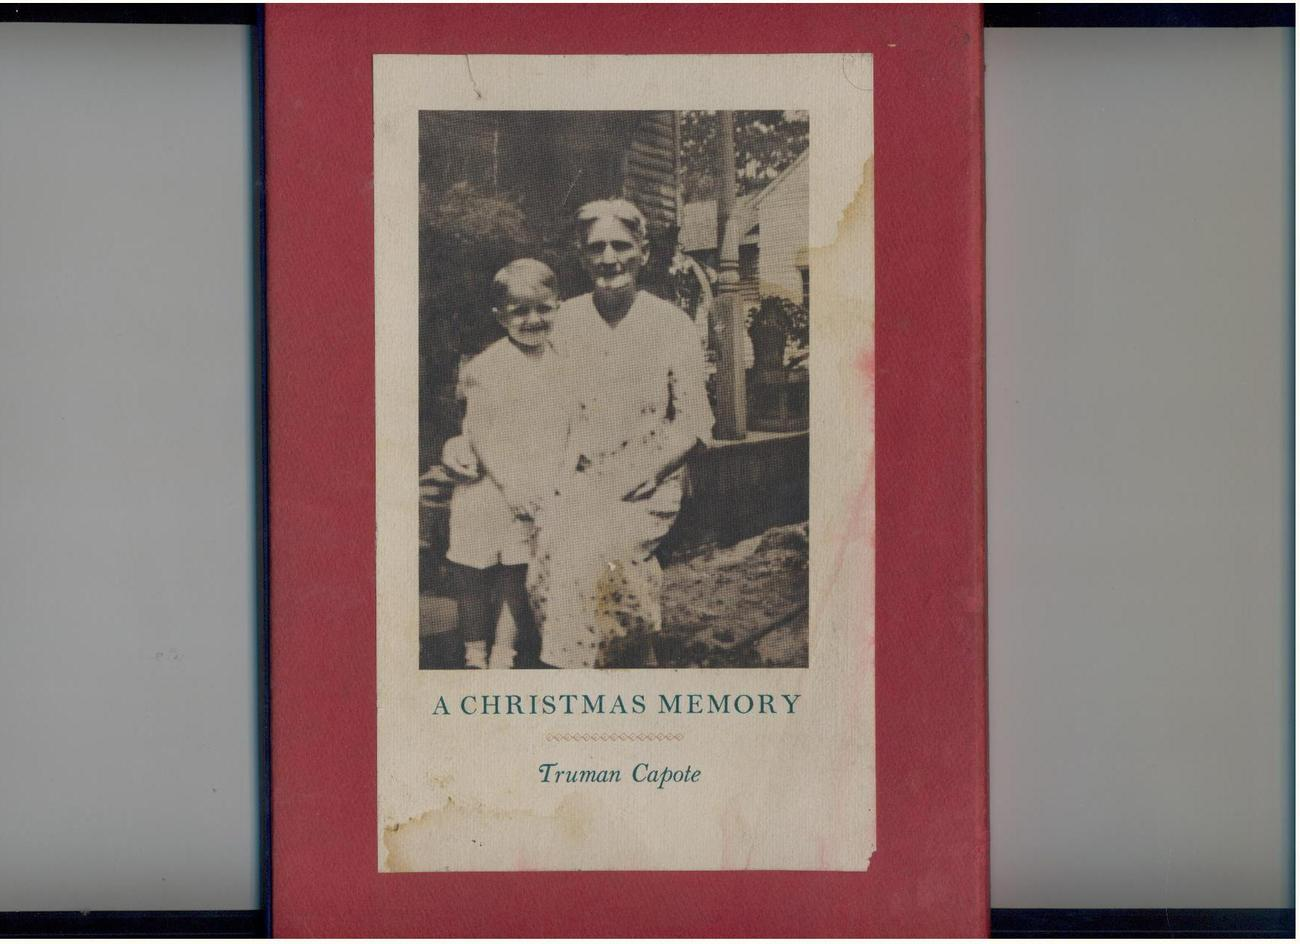 Capote - A CHRISTMAS MEMORY - VG+ to NF in case